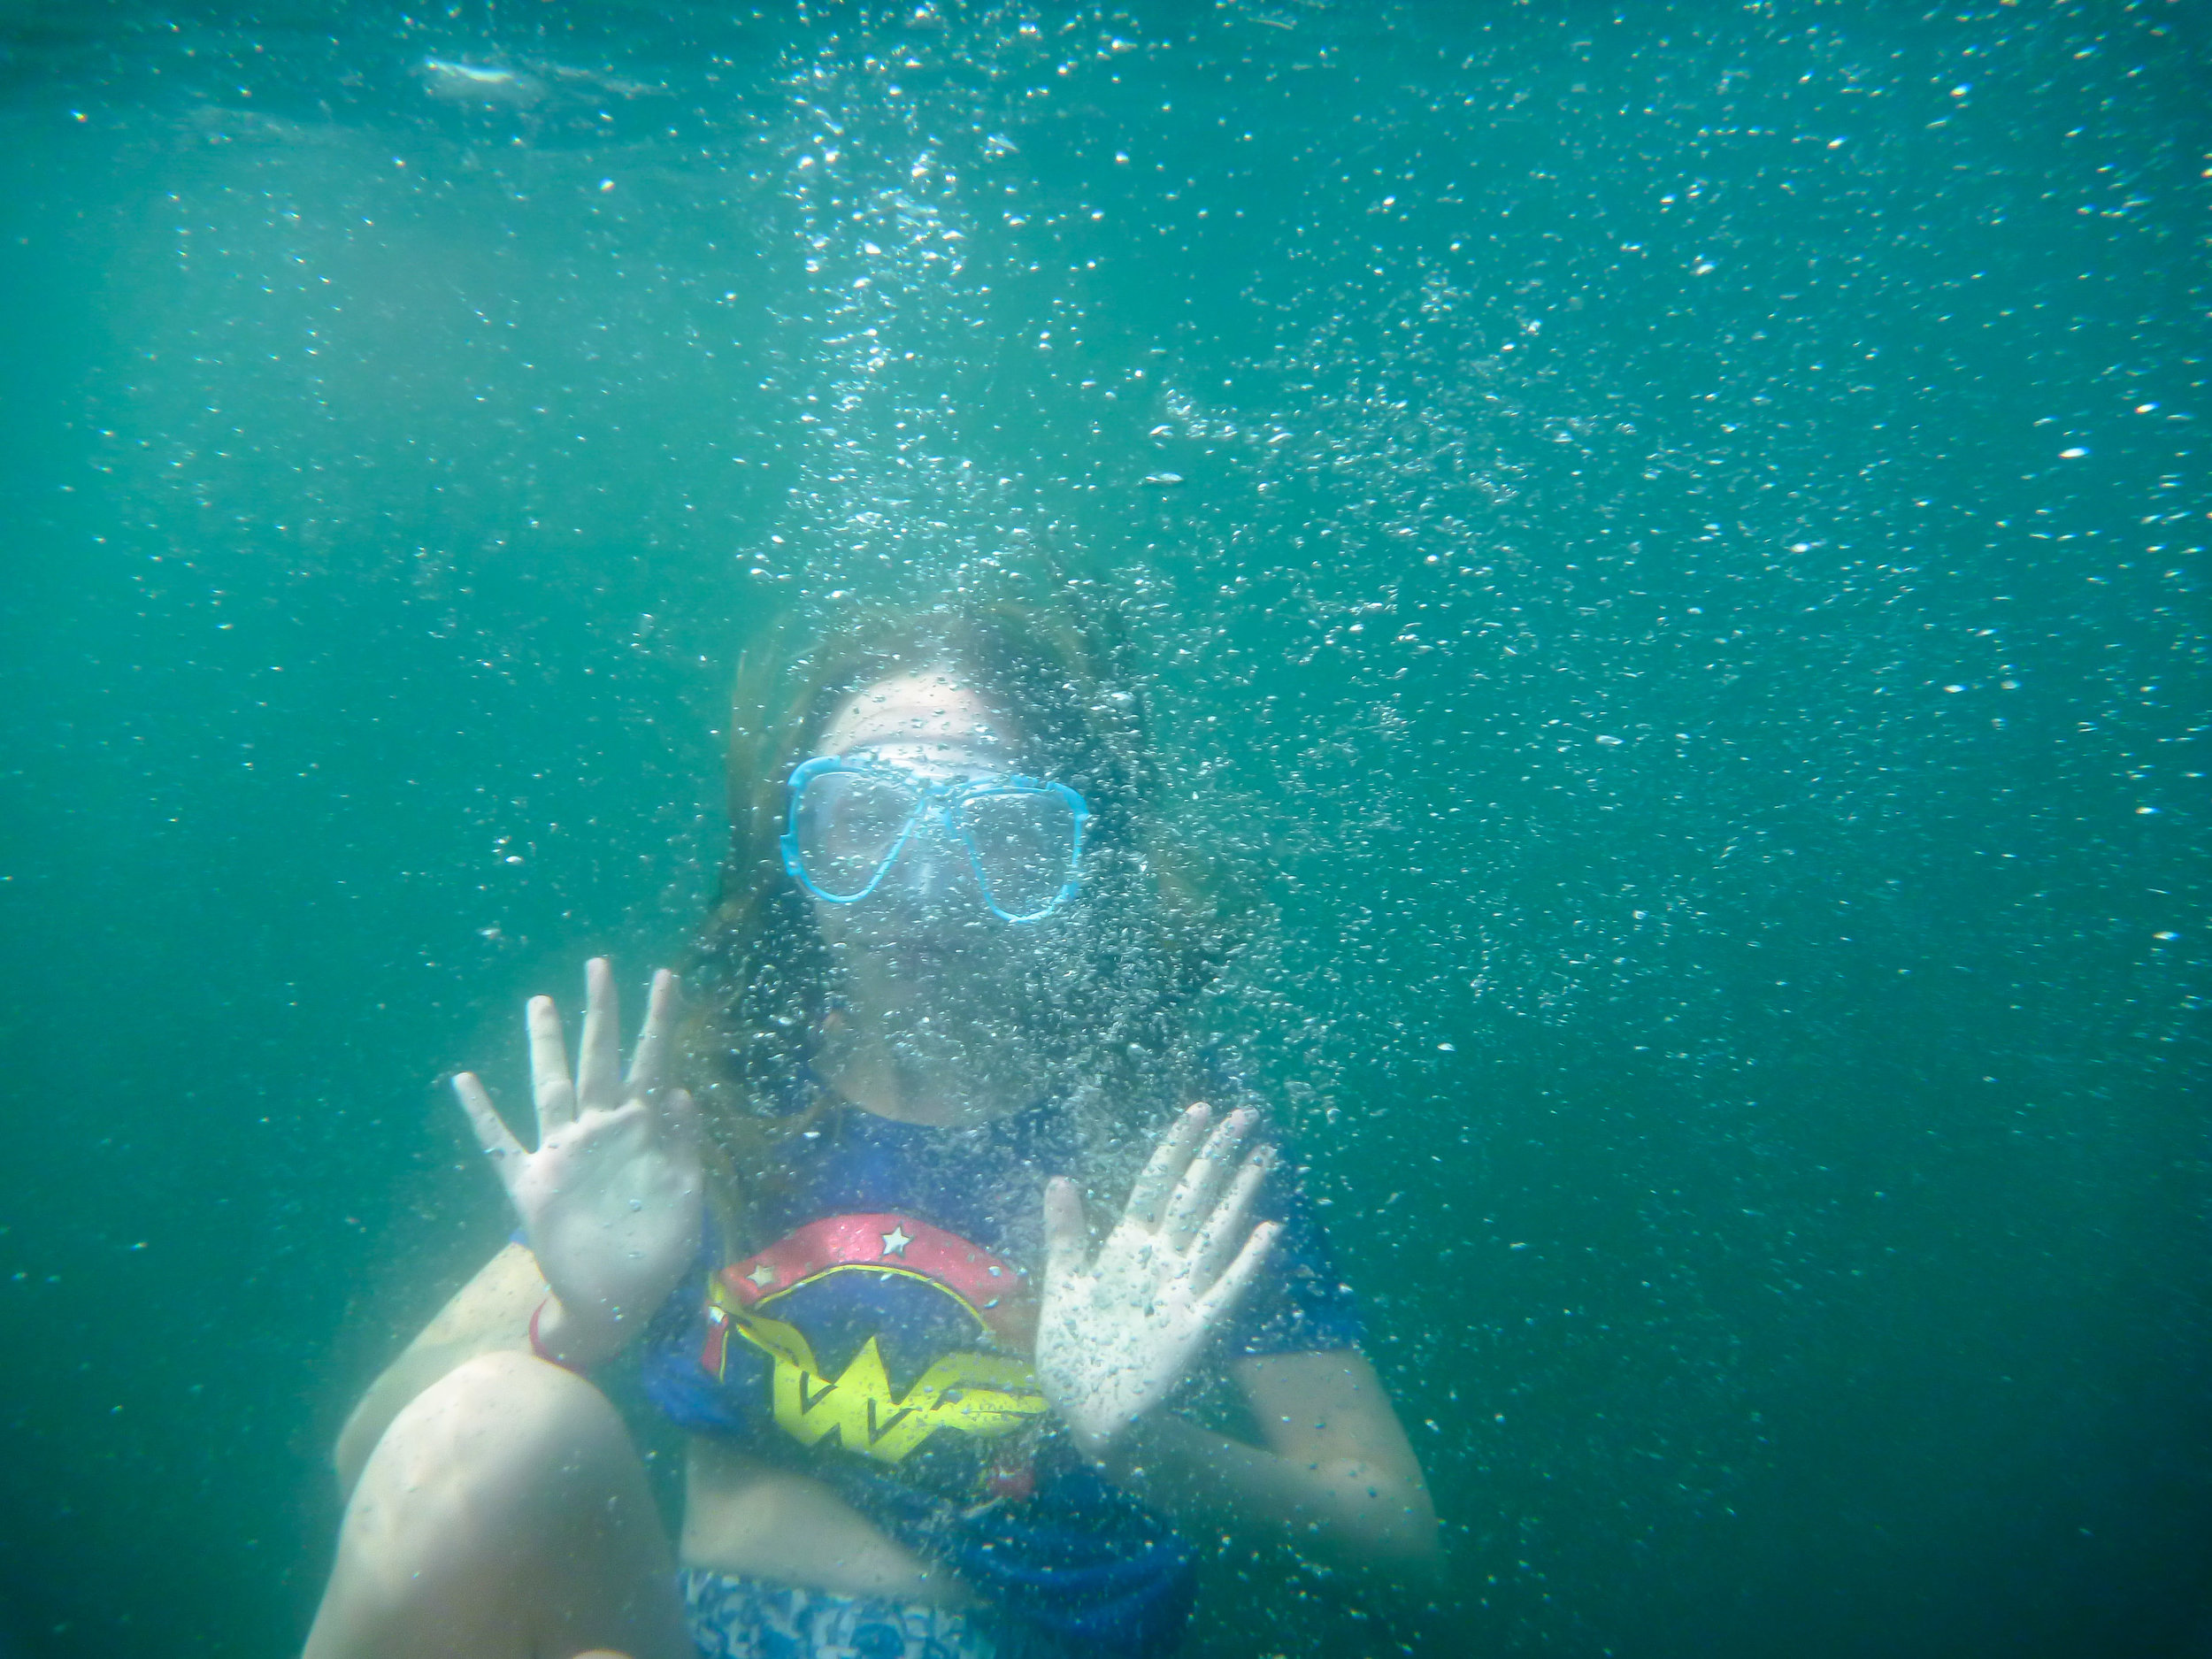 Many of the young people had a chance to get into the water and learn more about snorkelling.